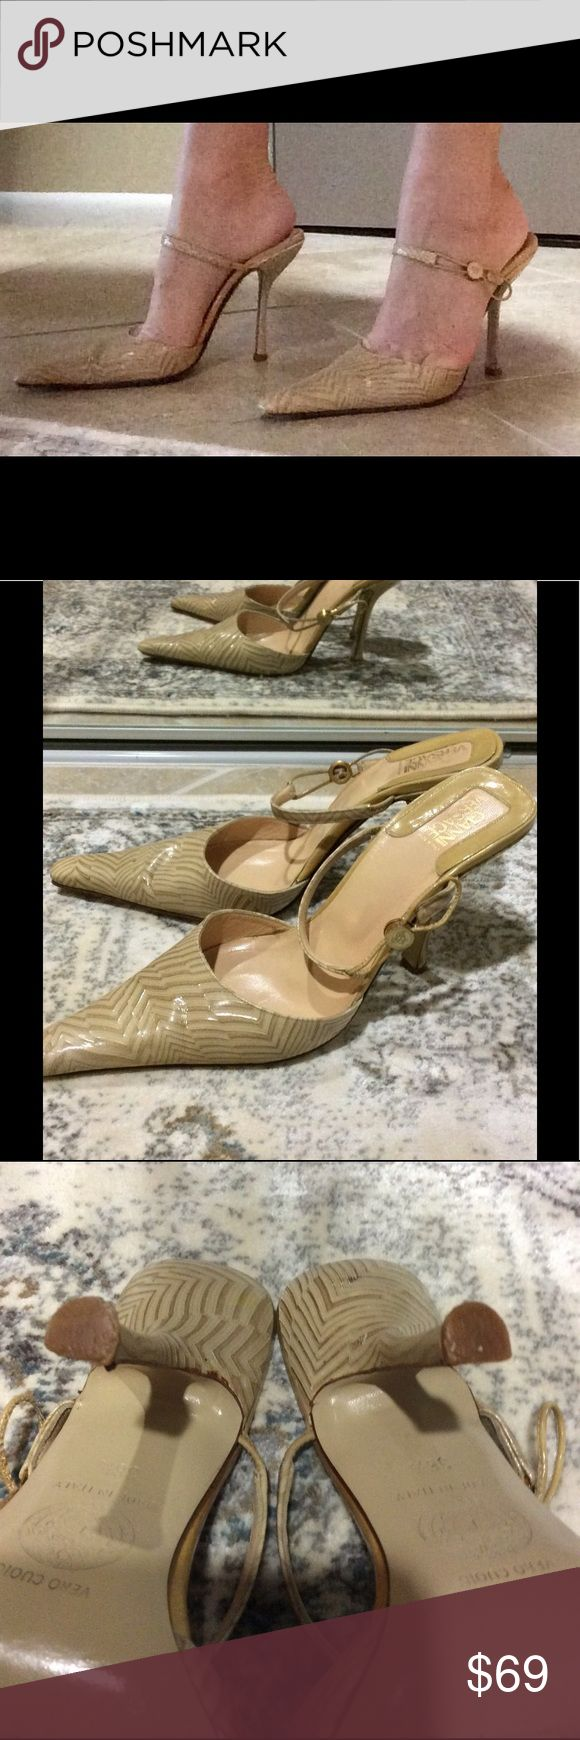 "Gianni Versace tan/nude patent leather zebra heels Pre-owned, very good condition Gianni Versace ""Medusa"" pointed toe slide on high heels. Tan/ nude zebra pattern with circle medusa accent. Size 6.5. The are absolutely amazing!!! All reasonable offers will be considered. Best of luck to all my fellow Poshers!!! Versace Shoes Heels"